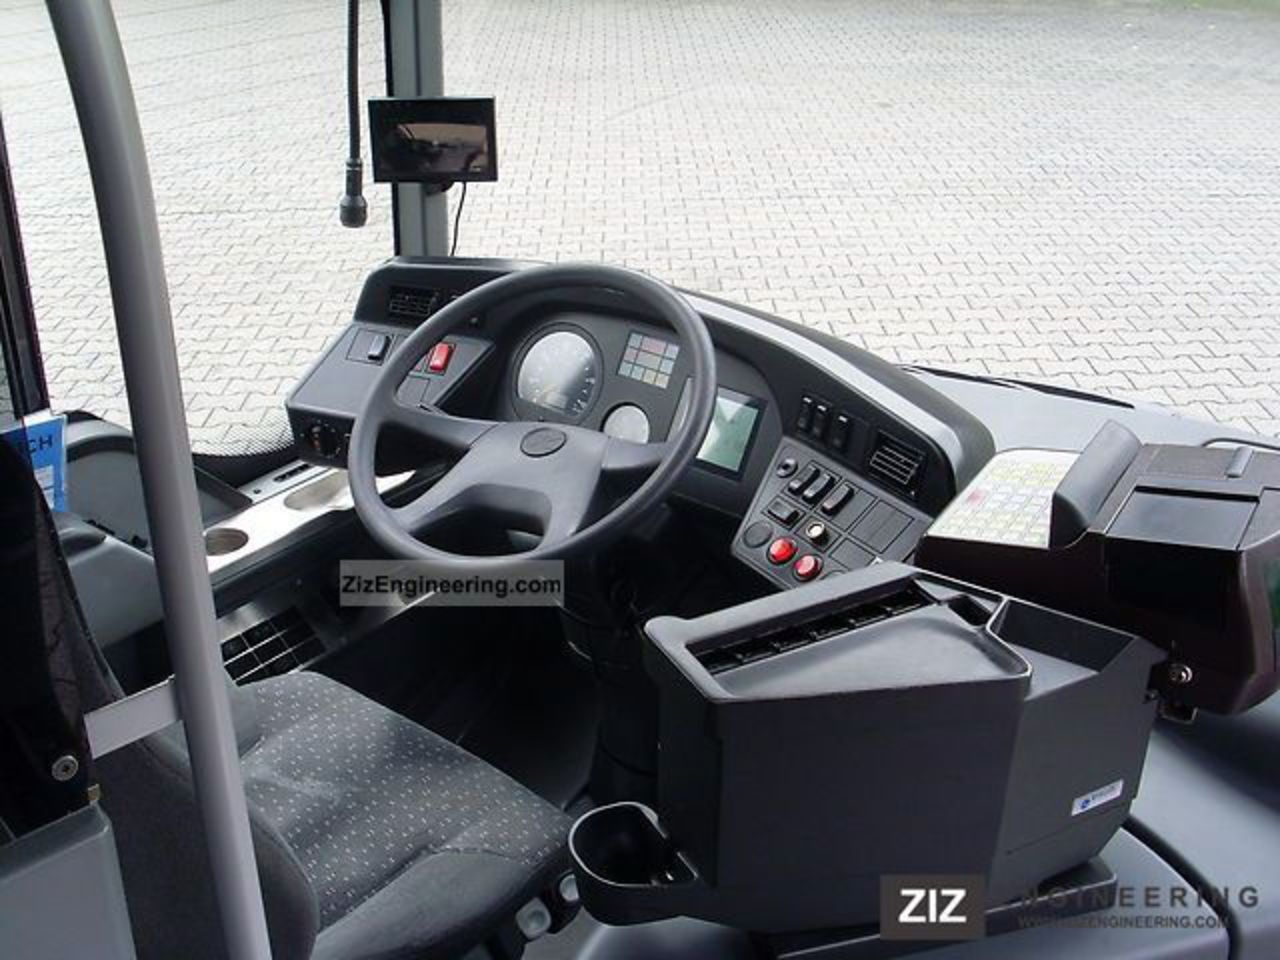 Setra S 415 NF 2007 Bus Public service vehicle Photo and Specs